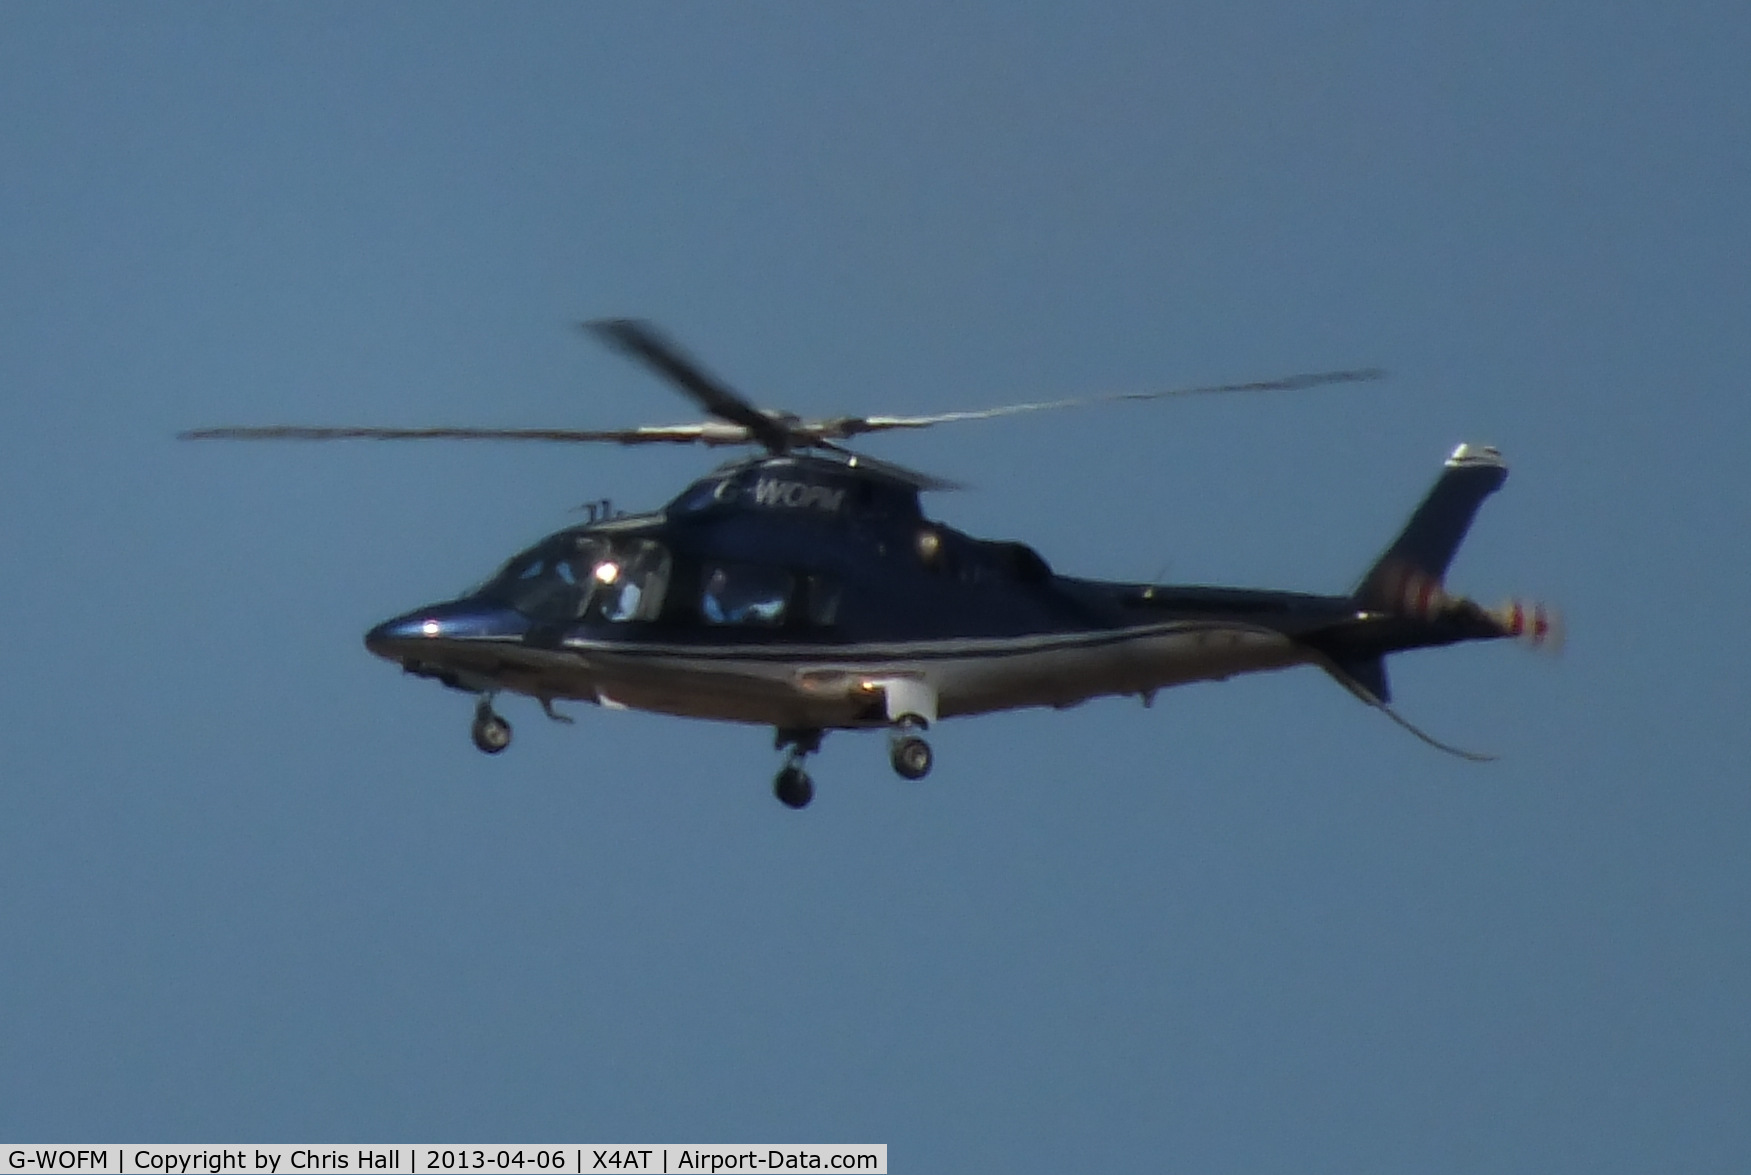 G-WOFM, 2006 Agusta A-109E Power C/N 11678, Ferrying racegoers into Aintree for the 2013 Grand National